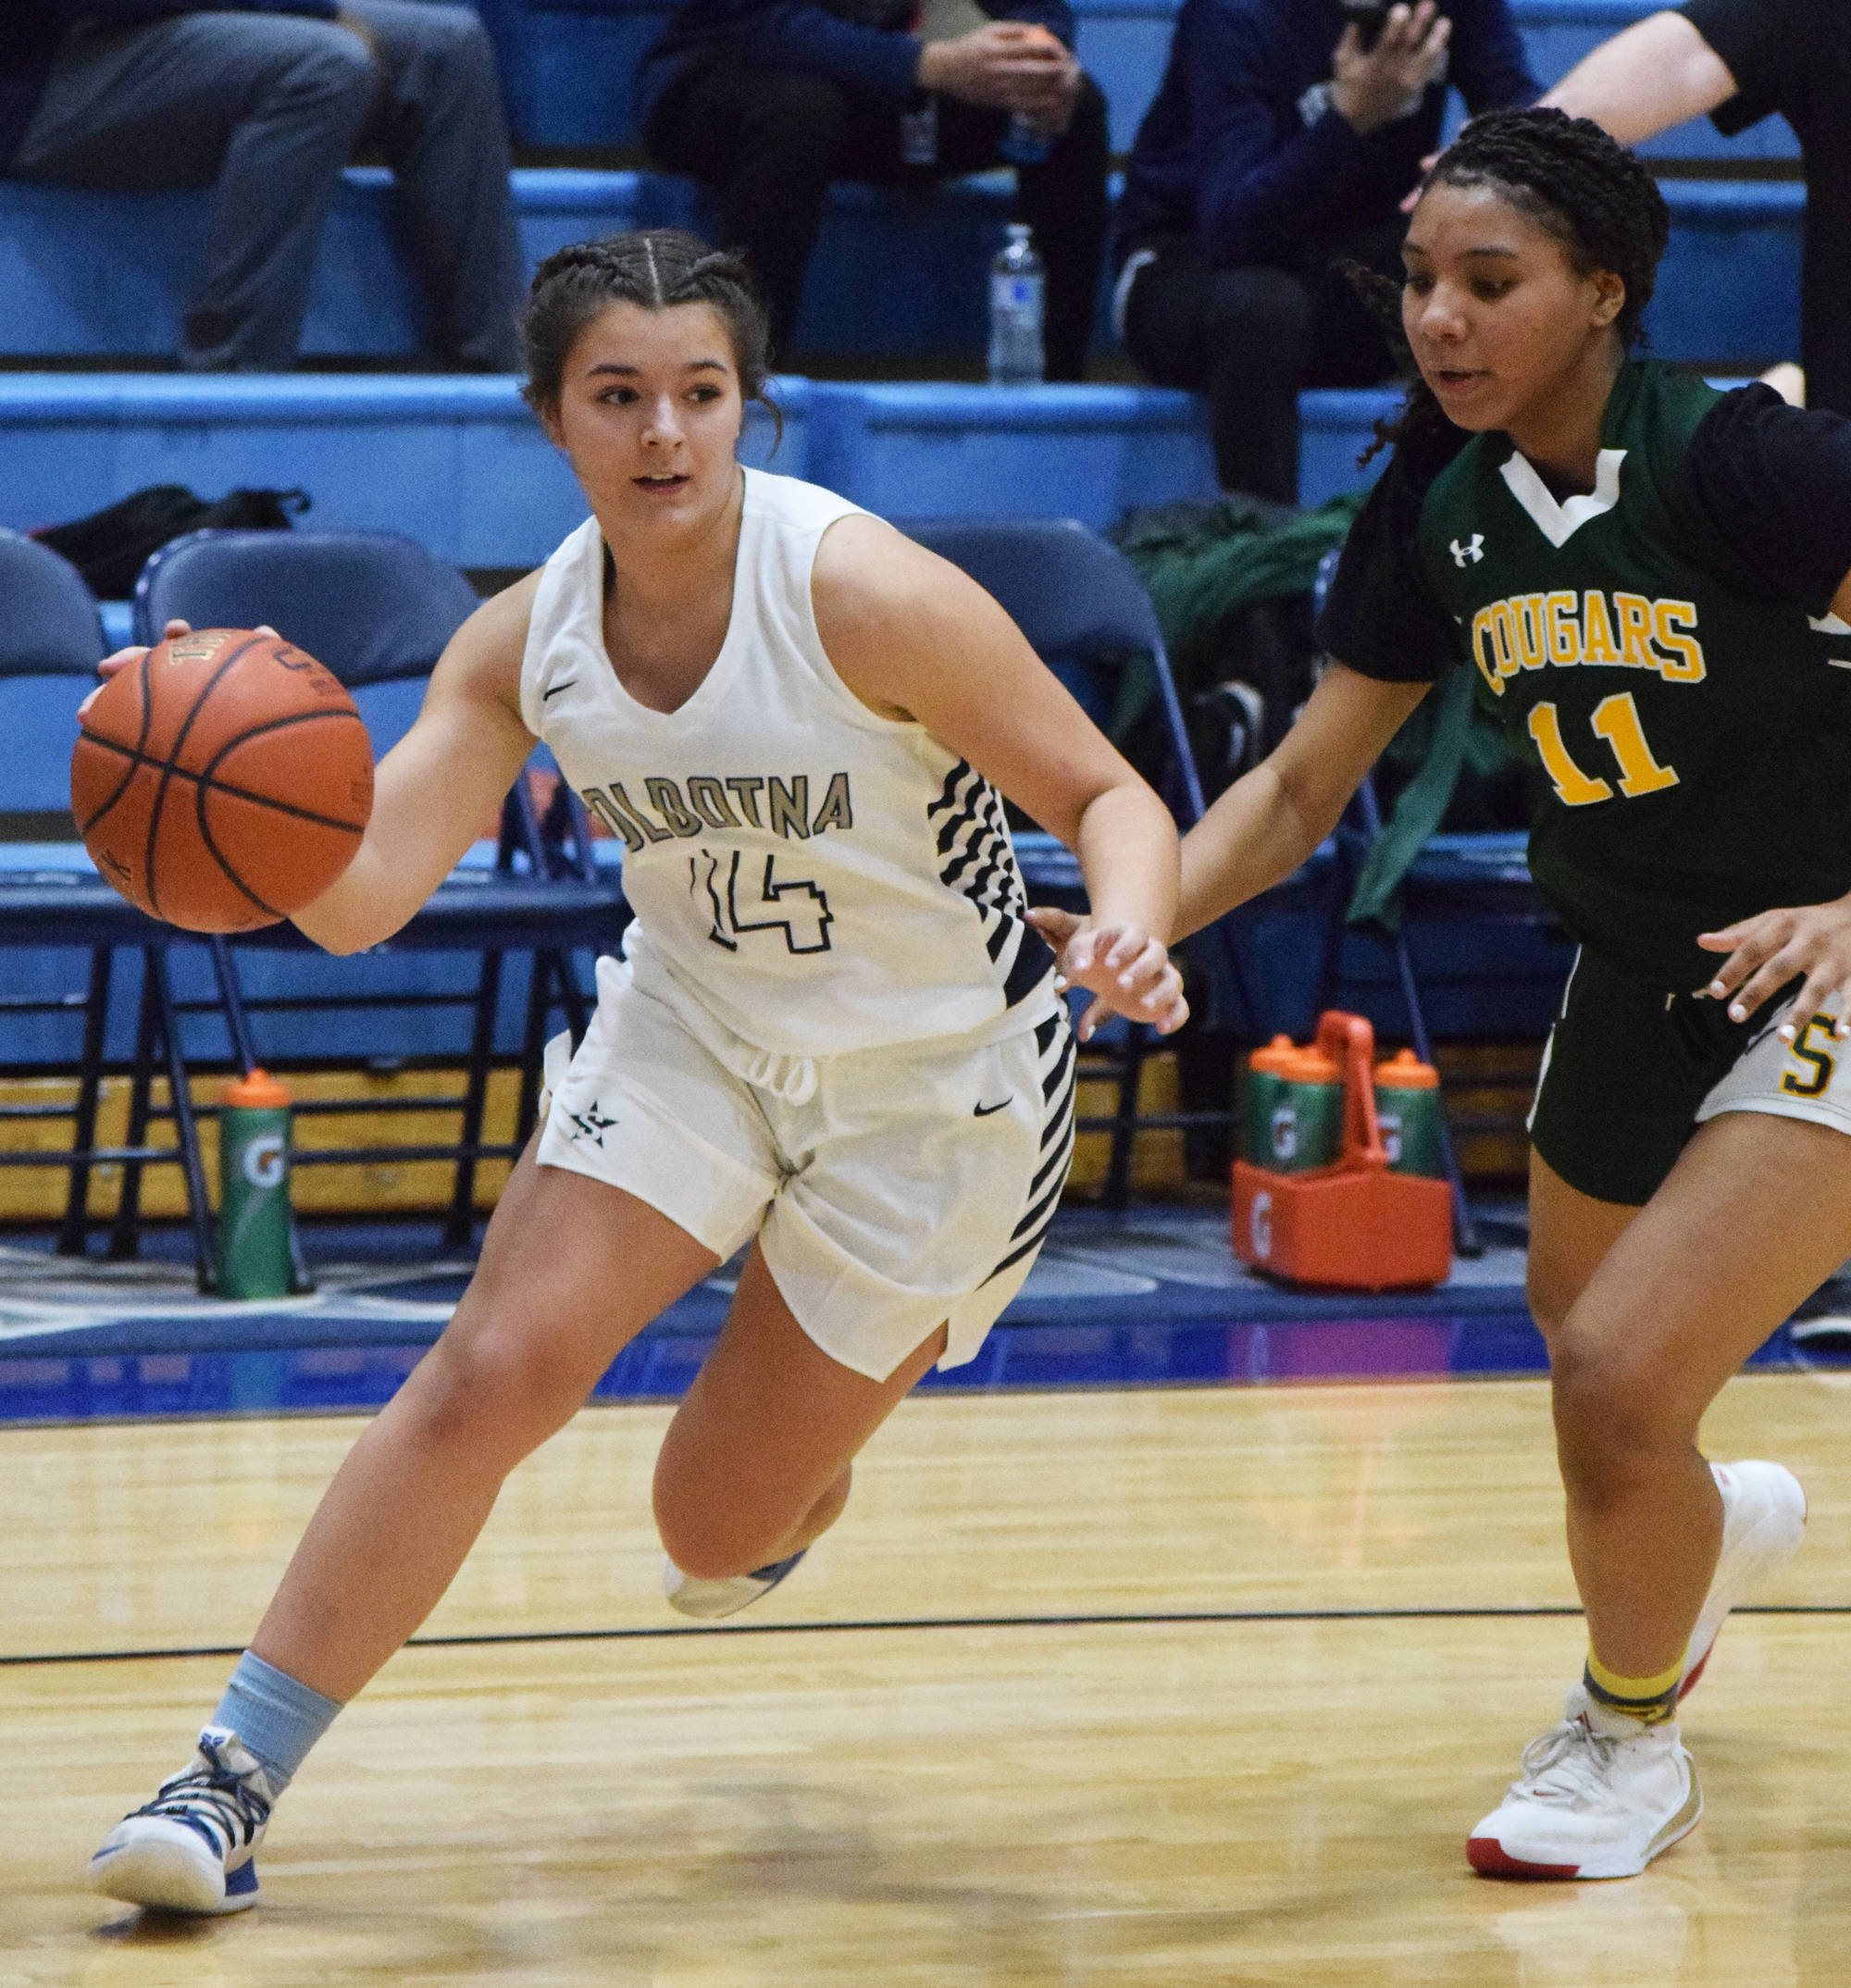 Soldotna's Mikayla Leadens races around Service defender Neolani Quitugua-Banks, Friday, Dec. 20, 2019, at the Powerade/Al Howard Tip-Off tournament at Soldotna High School. (Photo by Joey Klecka/Peninsula Clarion)